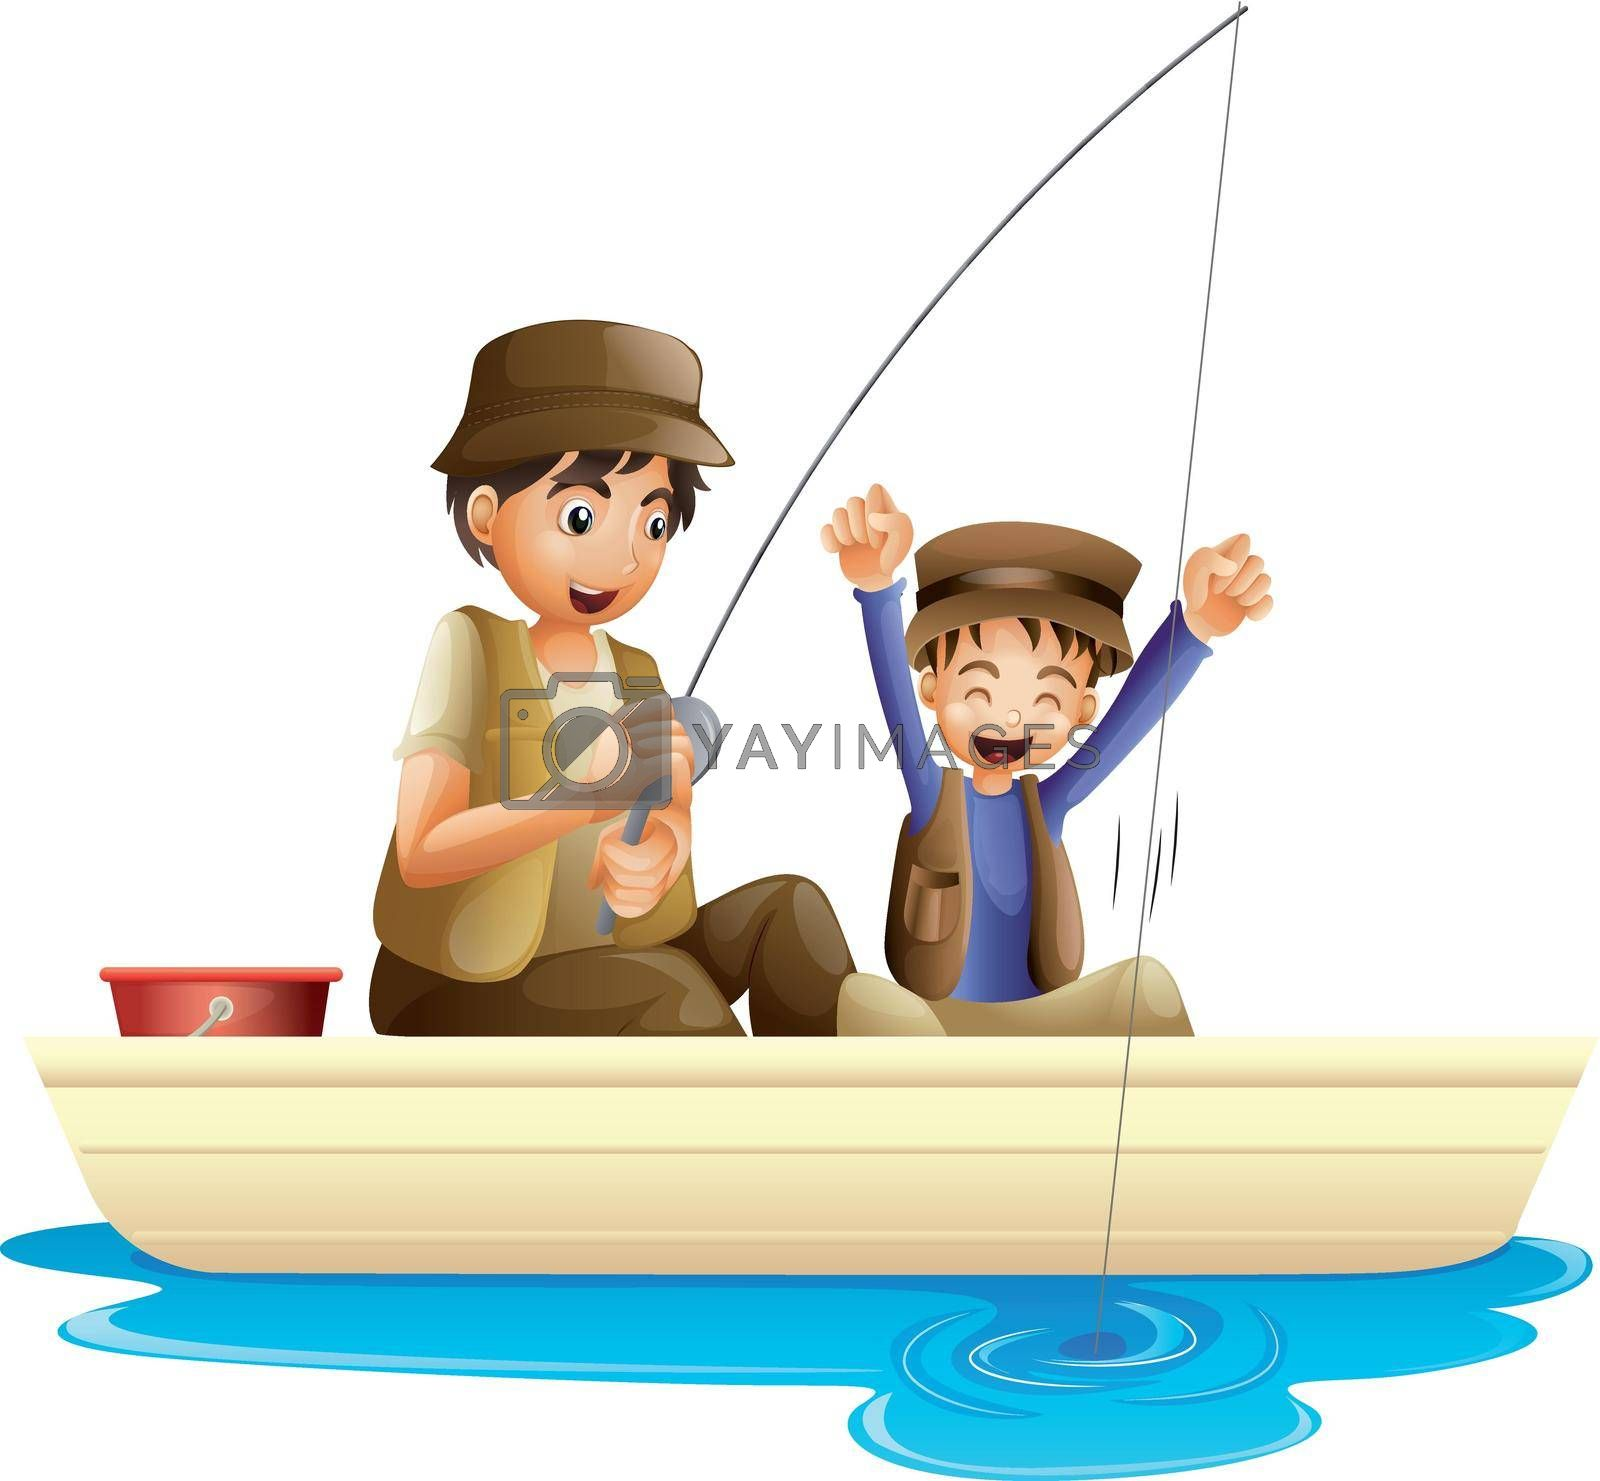 Royalty free image of father and son by iimages